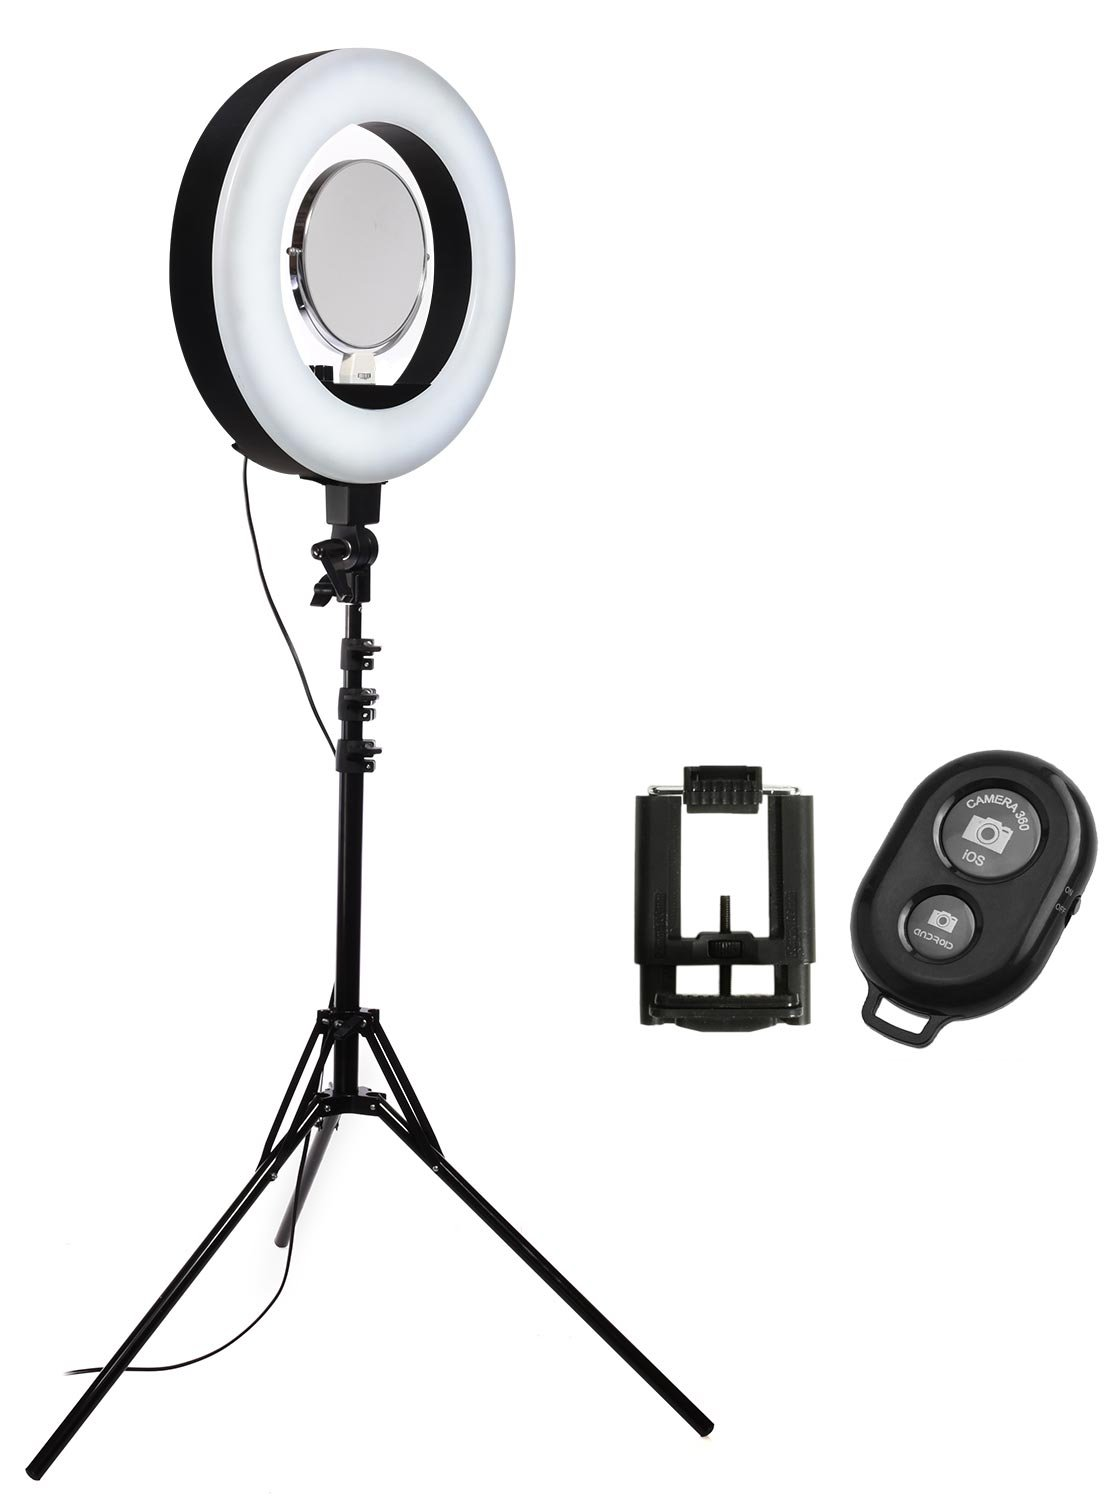 Stellar 18'' LED Diva II Ring Light (Black) w/Wireless Bluetooth Camera Shutter Remote Control for IOS & Android Phones and Universal Smartphone Tripod Mount & Adapter For Most Smartphones by Calumet